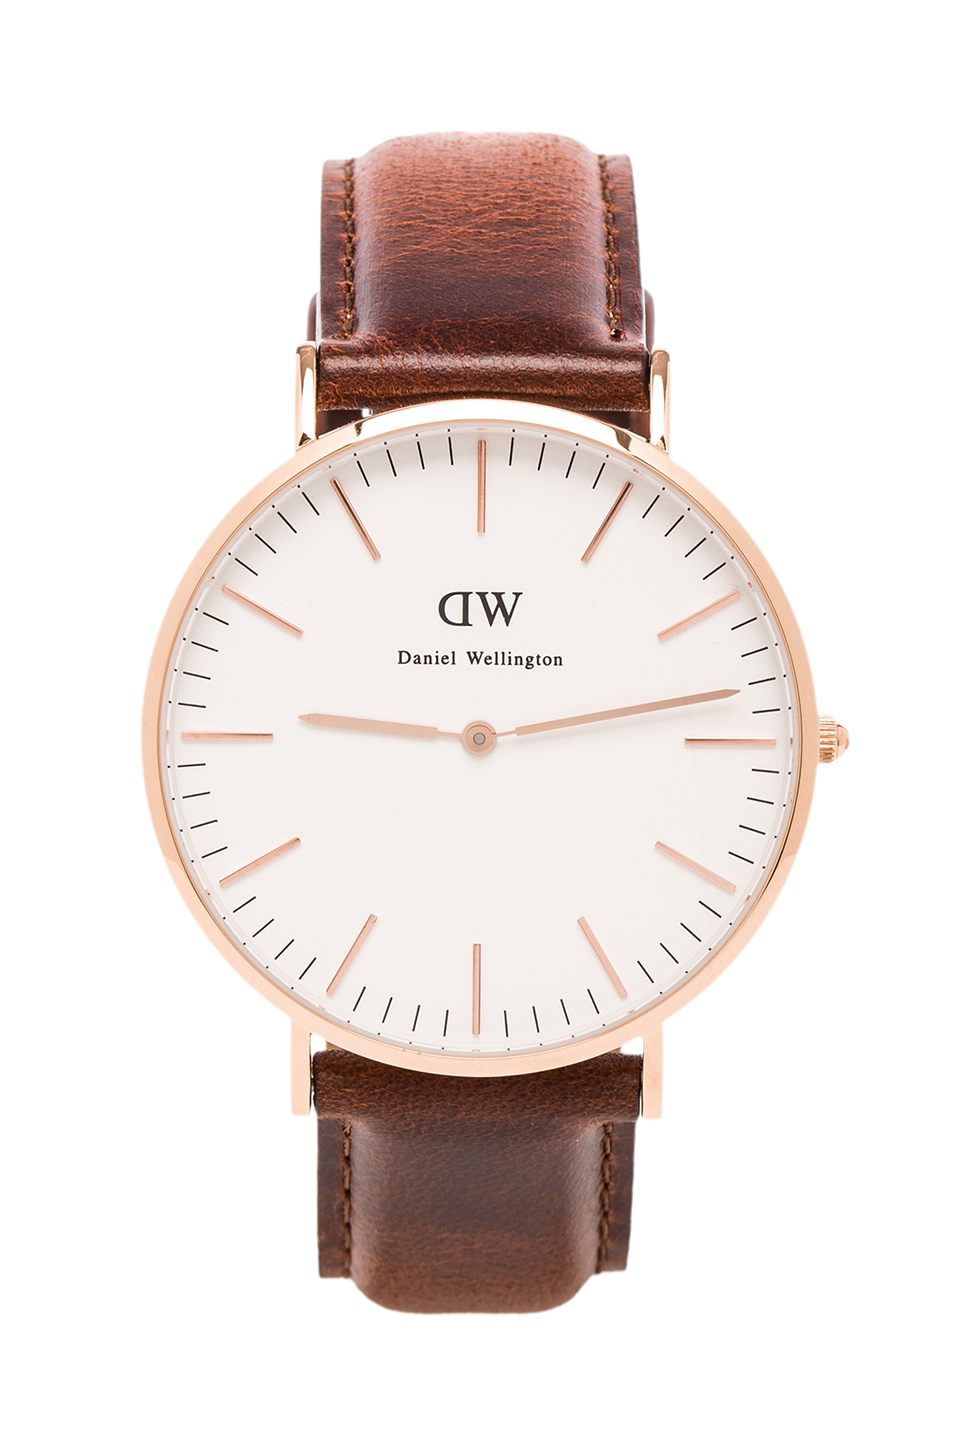 Daniel wellington st andrews 40mm in rosegold from revolveclothing.com